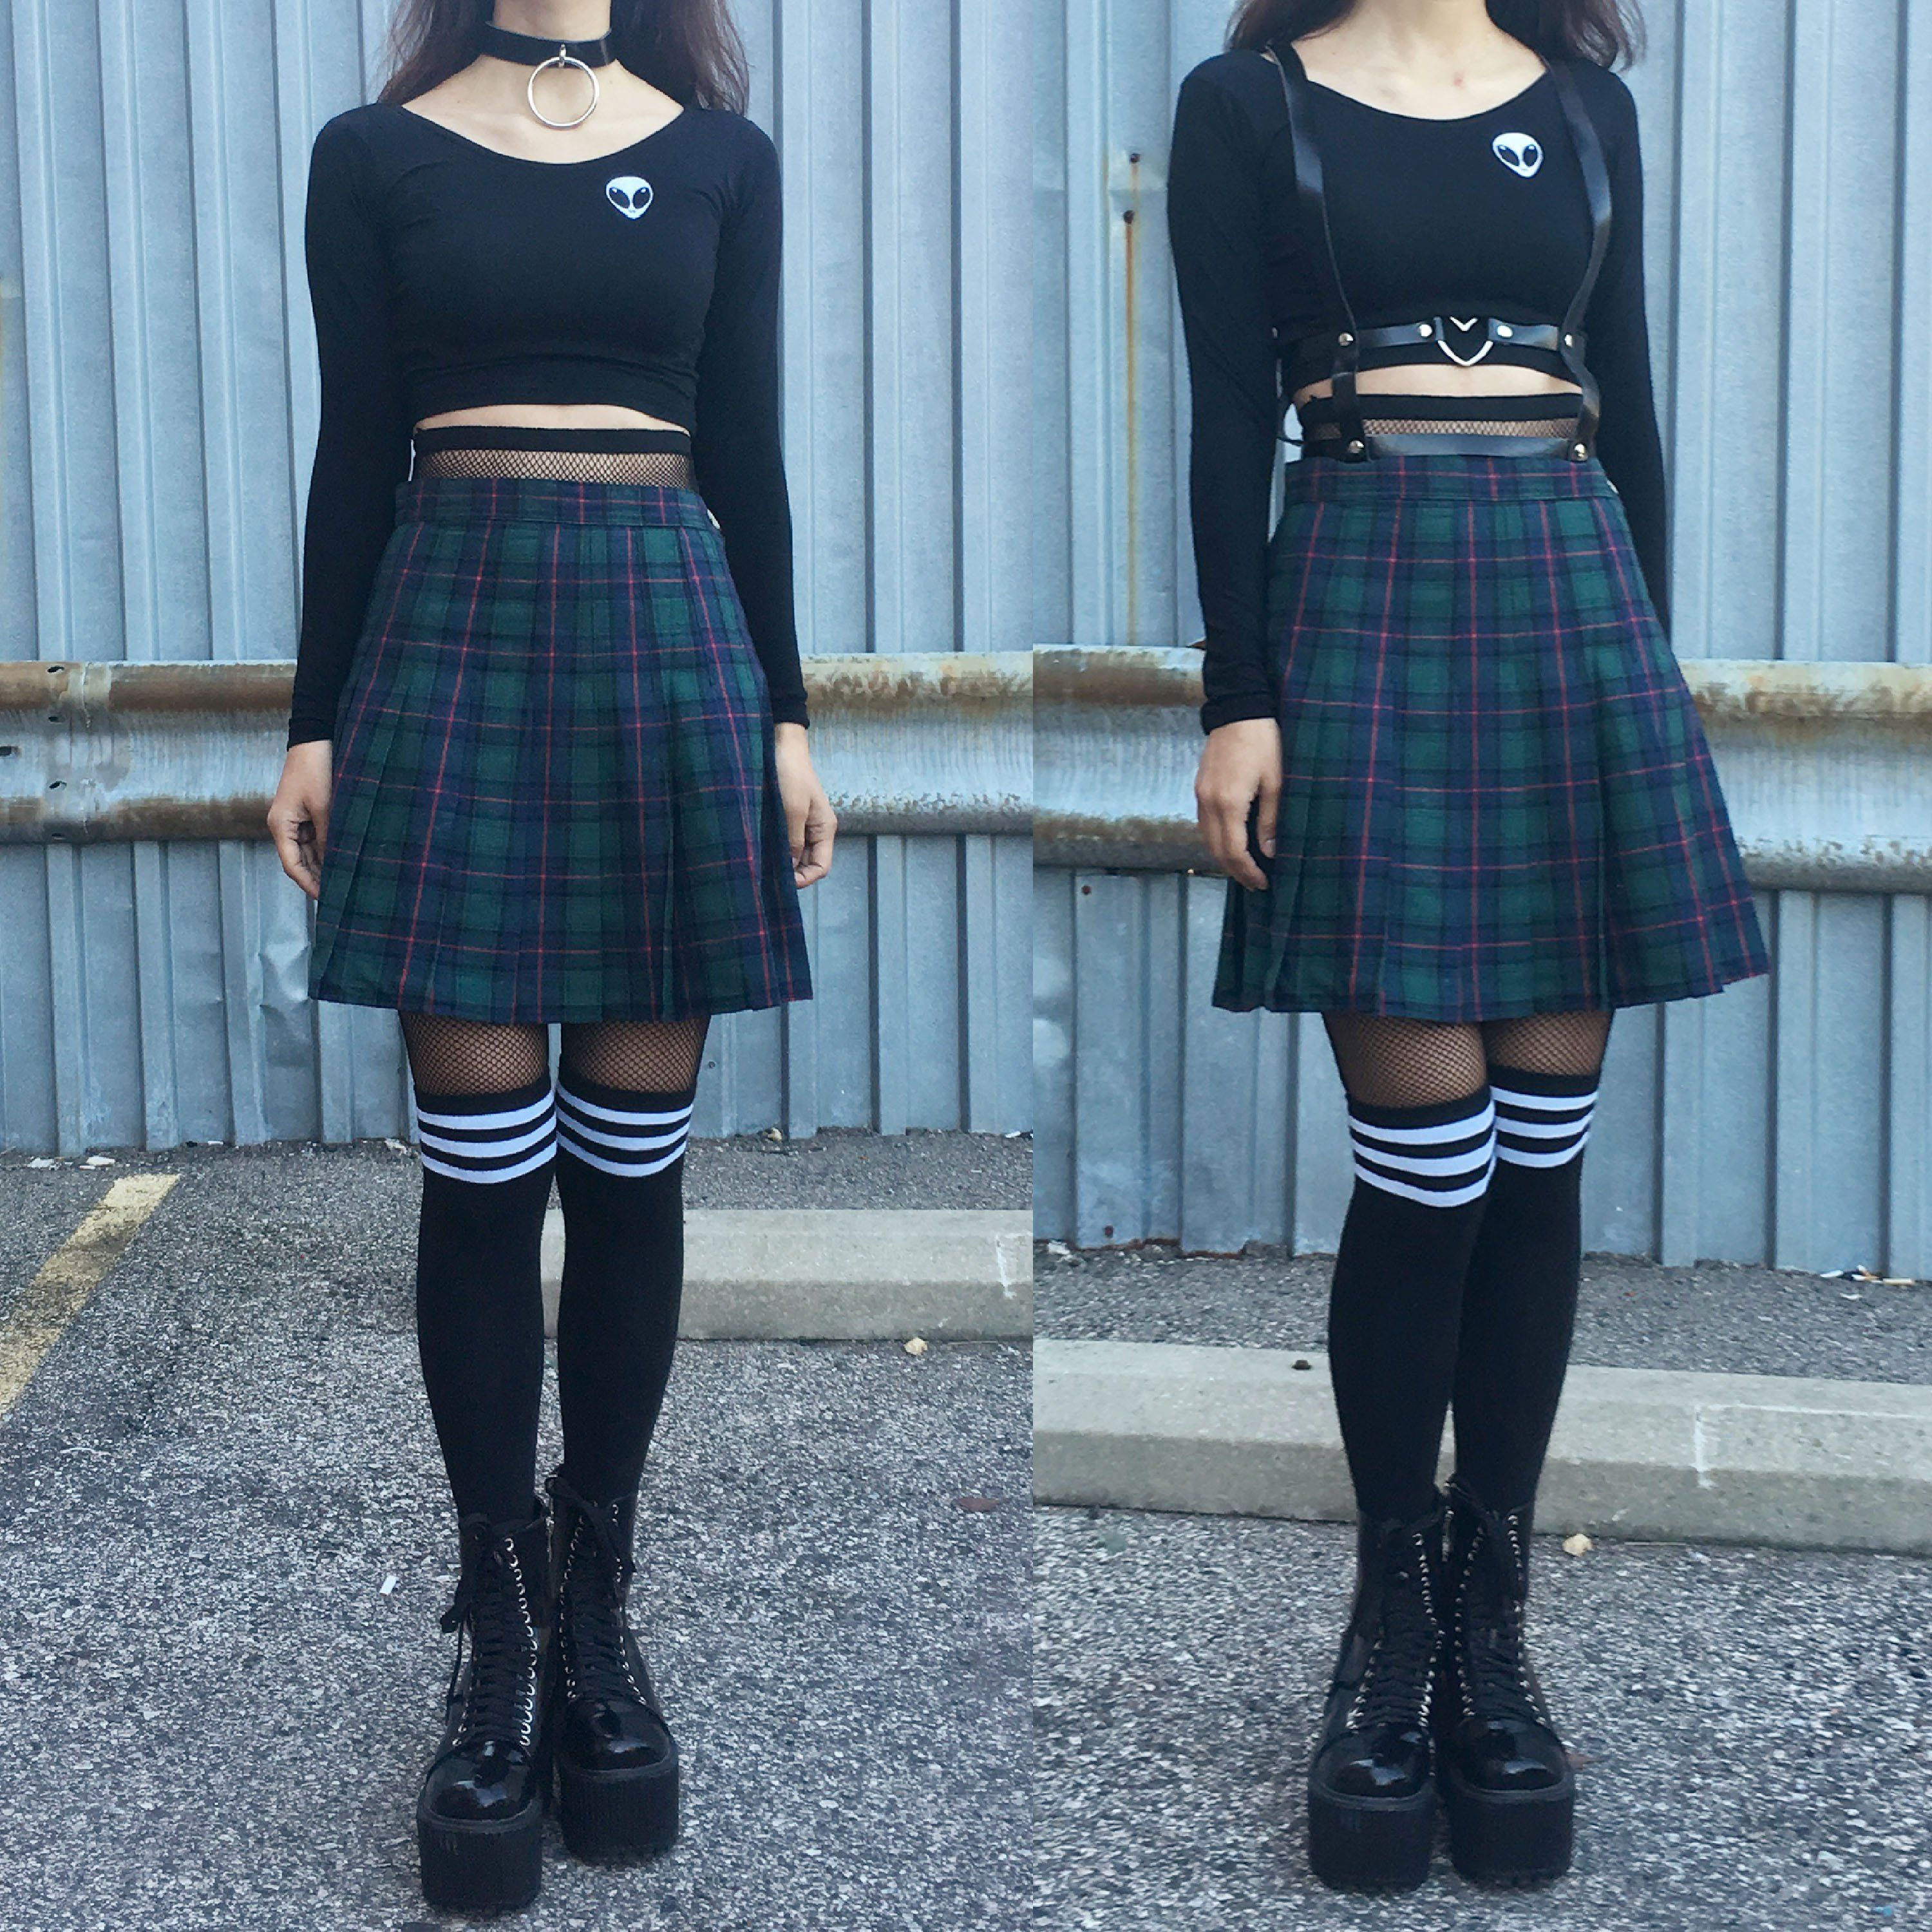 d8af7981d959 NEW- 90s grunge GREEN PLAID OUTFIT in 2019 | Bottoms | Outfits ...